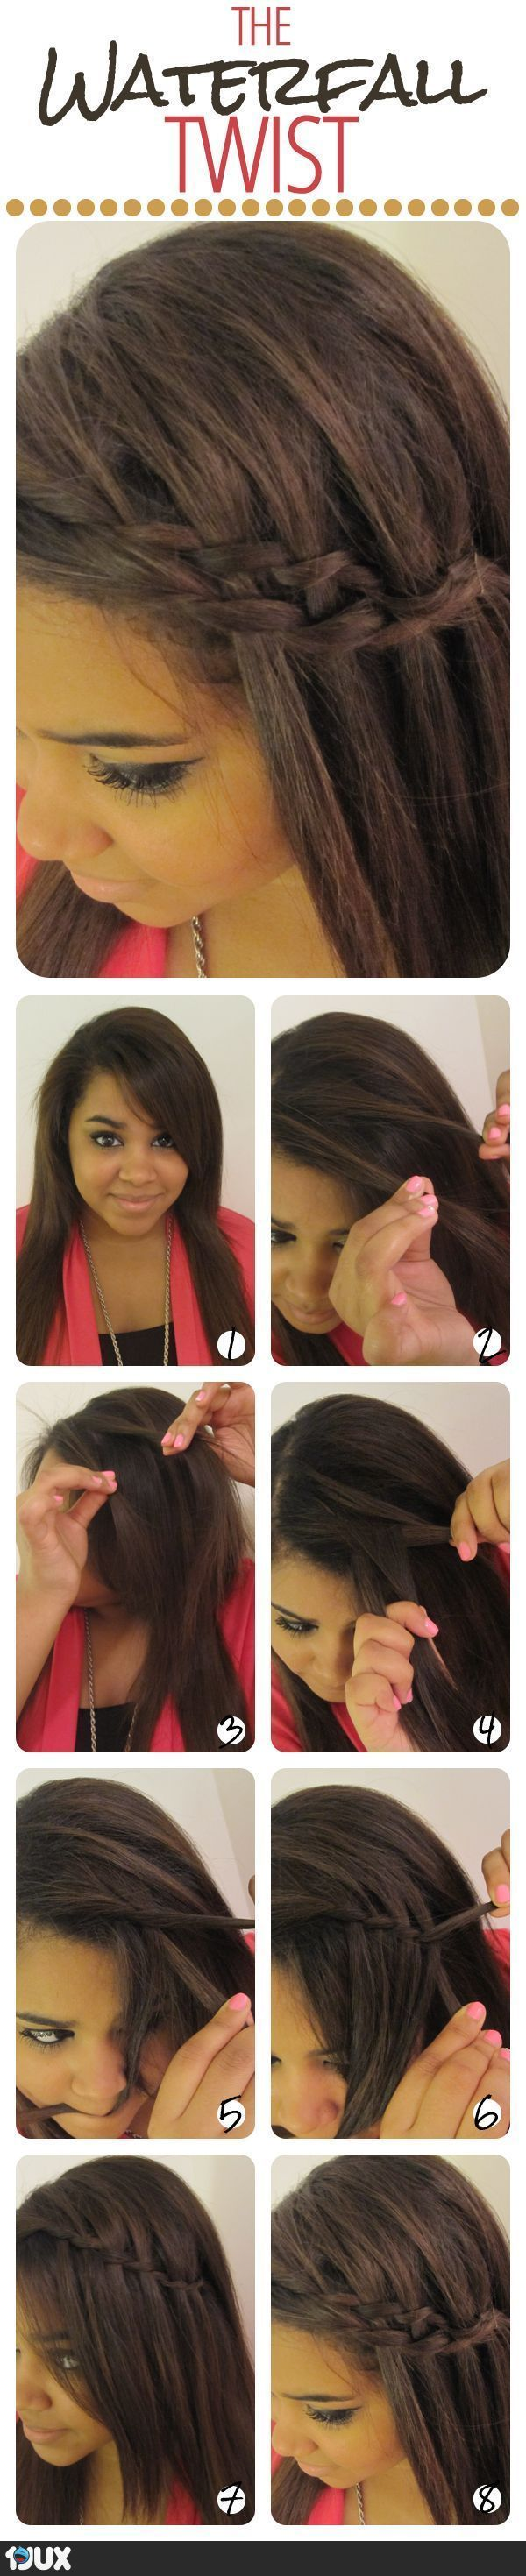 The Waterfall Twist - Hairstyle Tutorial